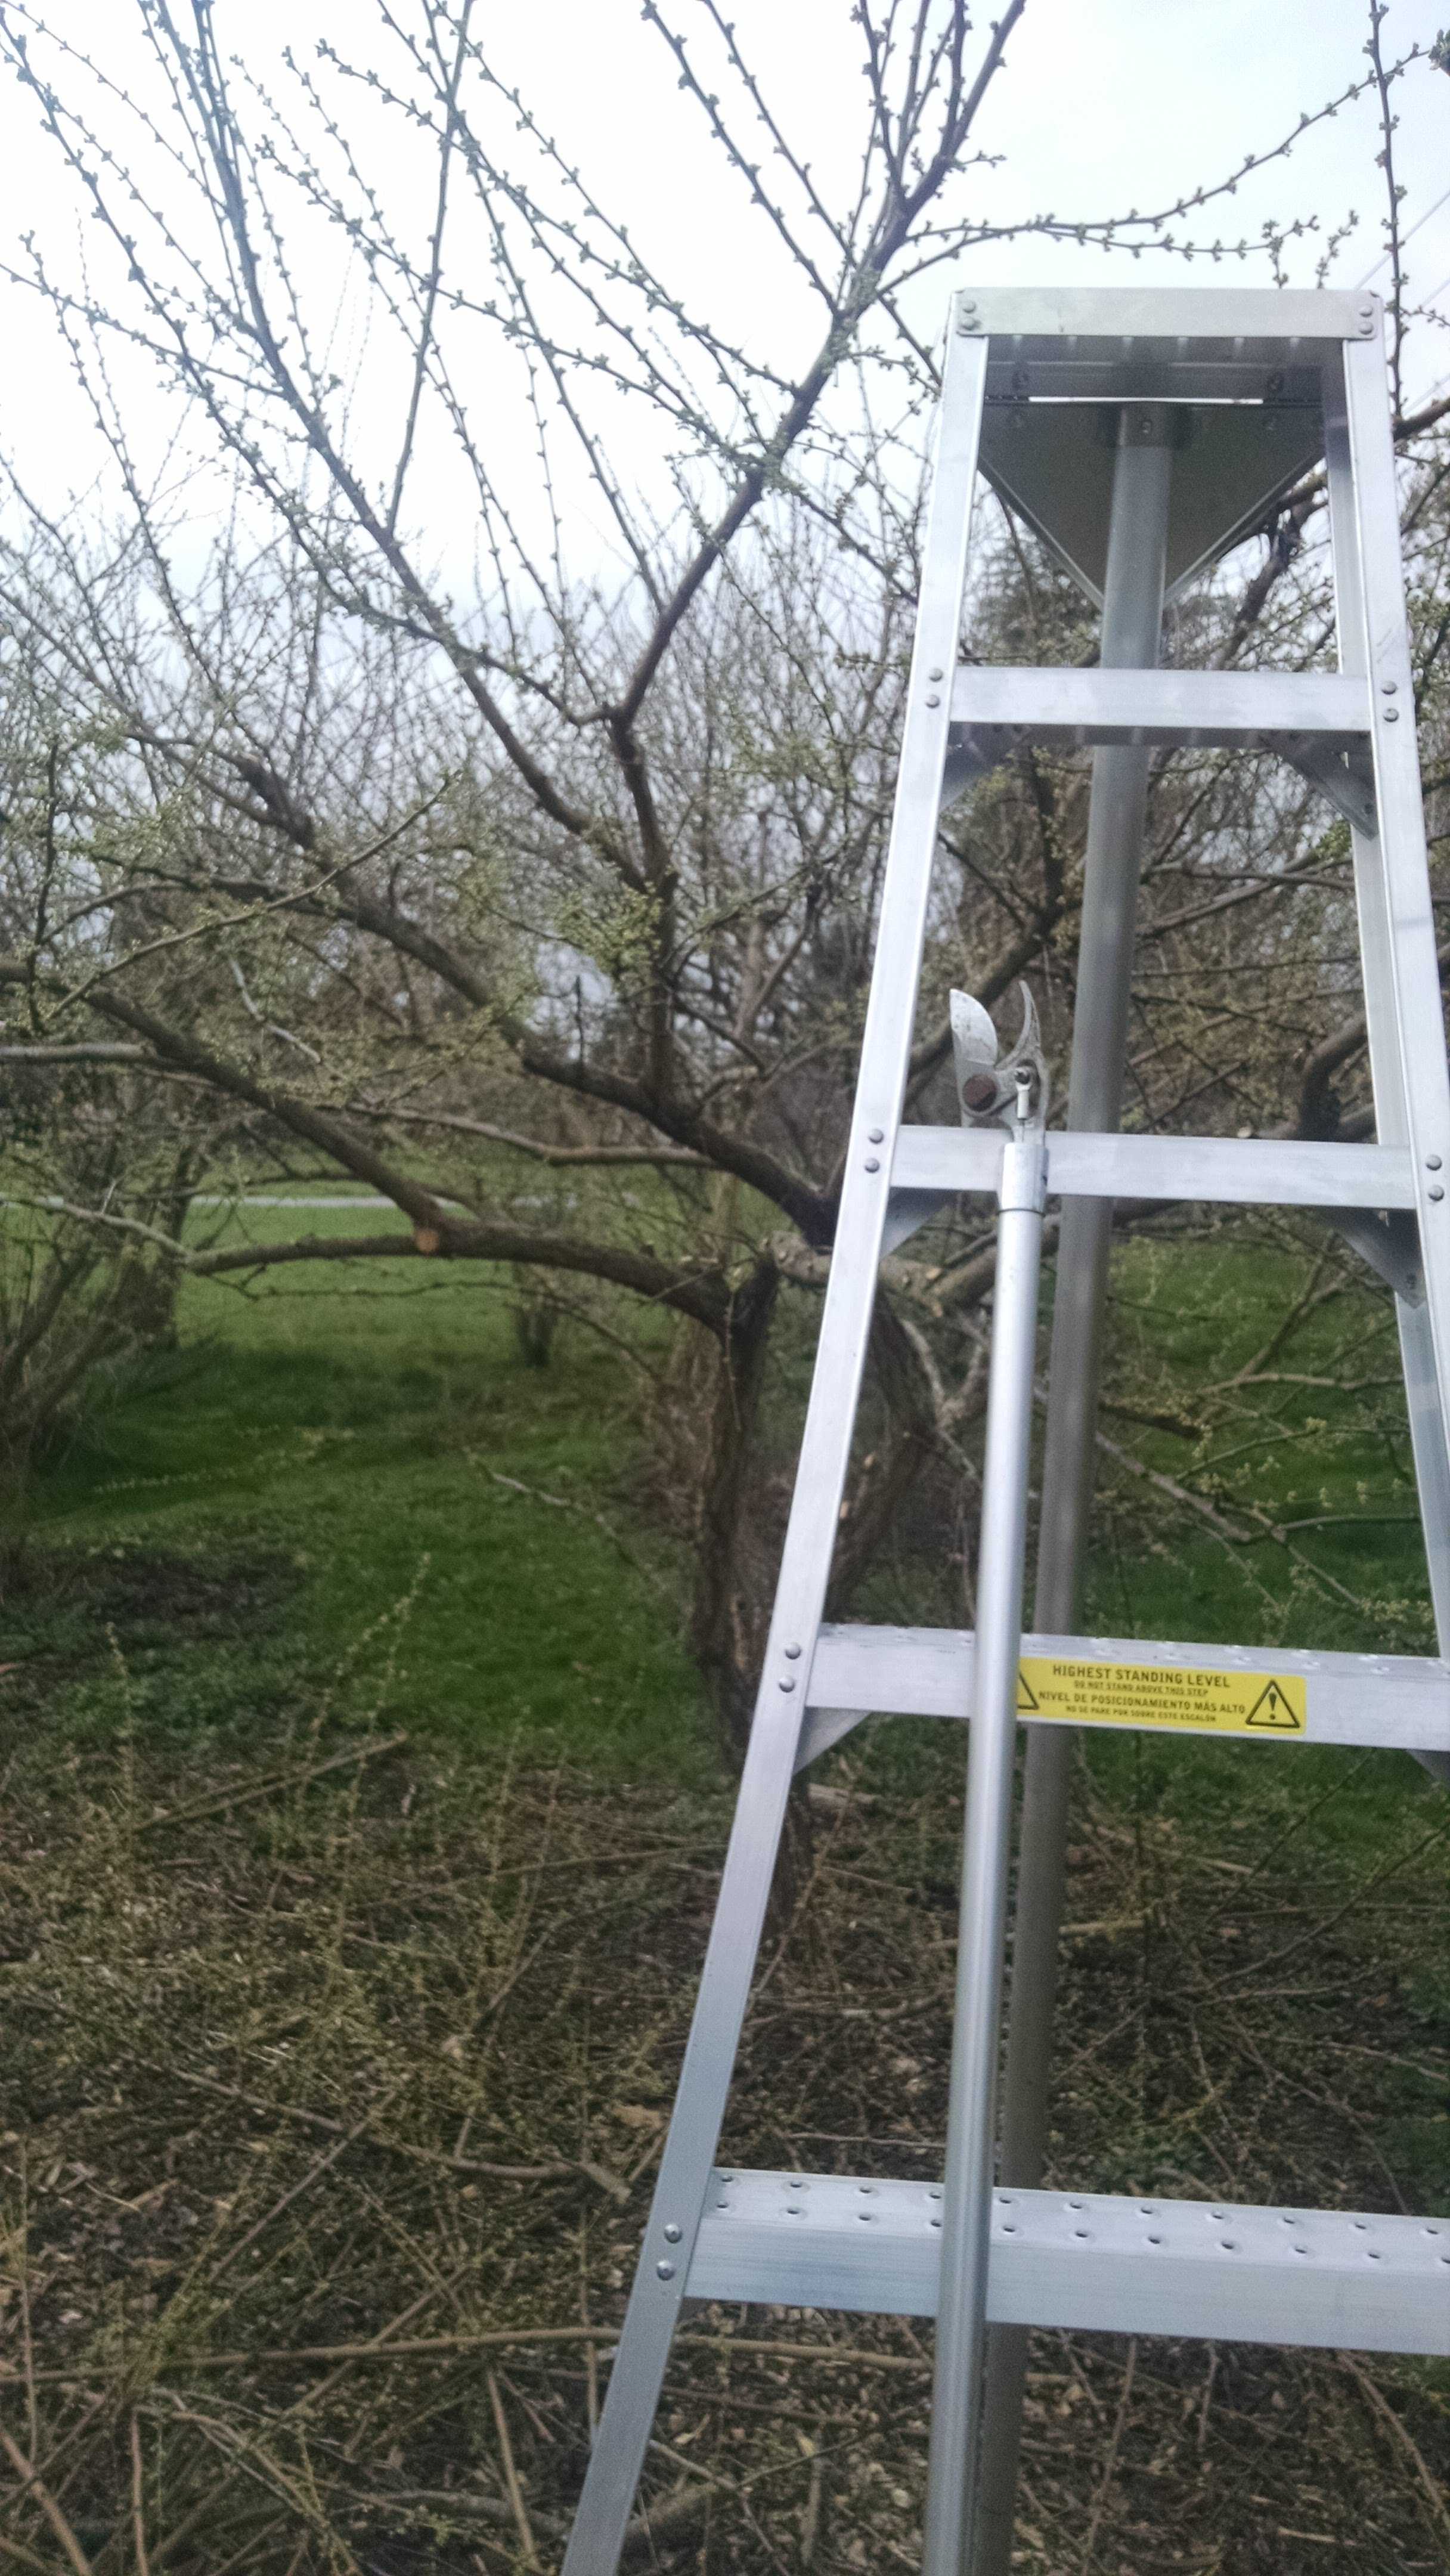 tools of the trade: orchard ladder, extension pruner (plus hand pruners, loppers, and hand saws)